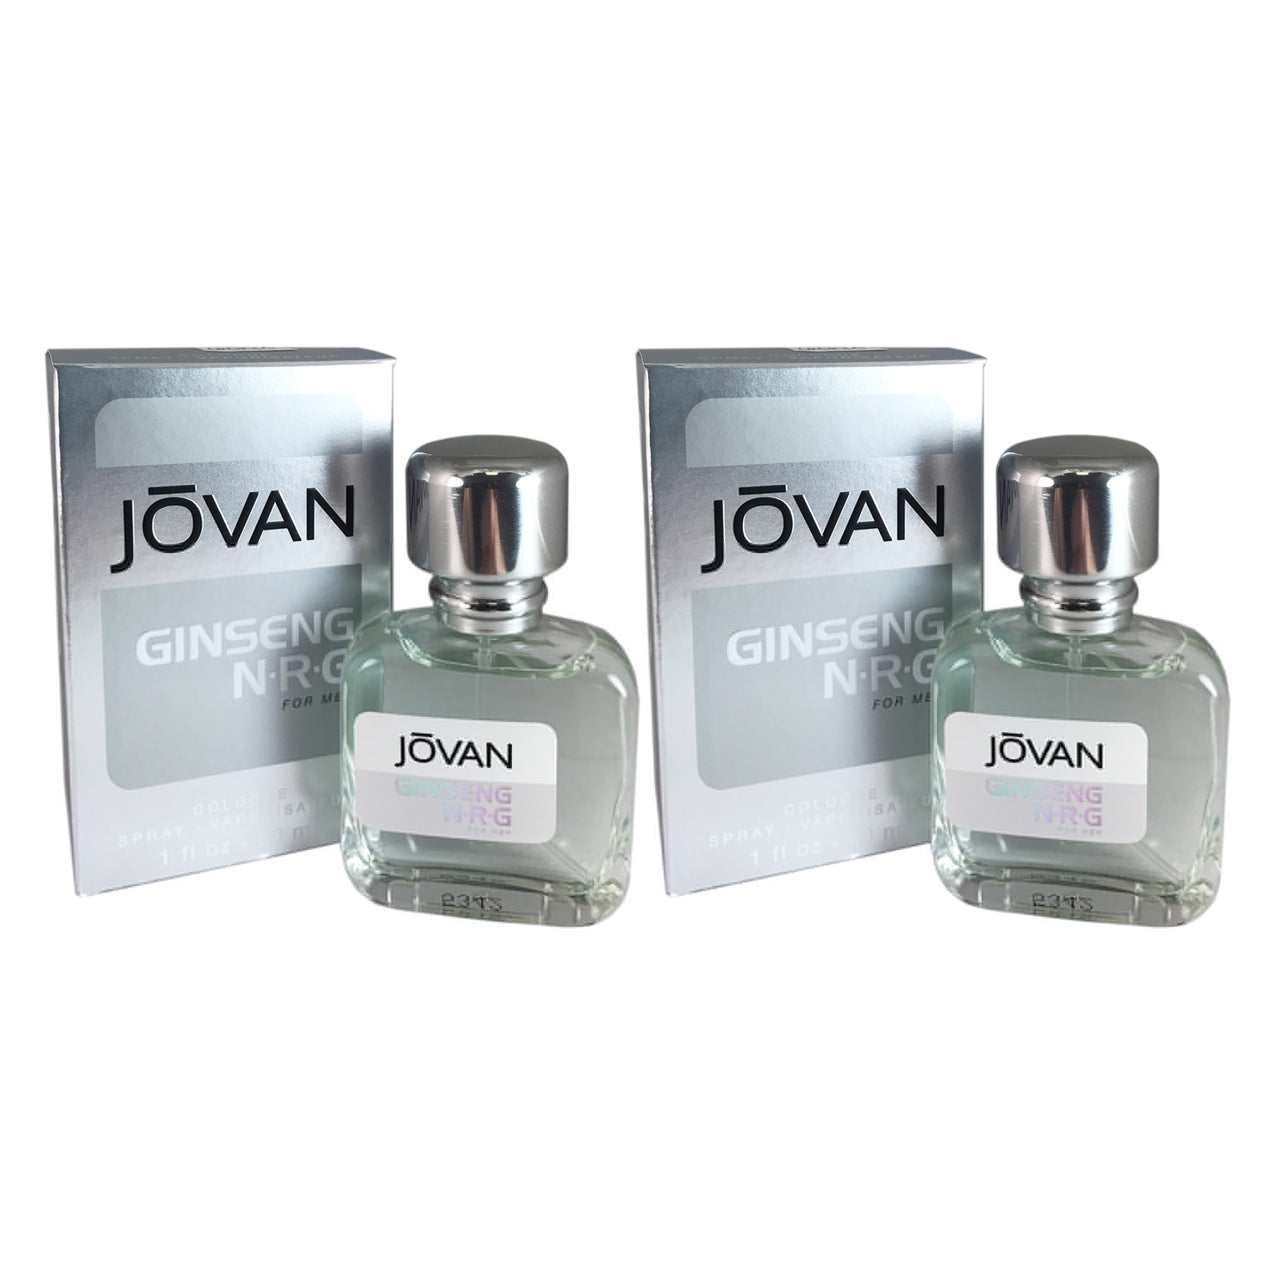 Jovan Ginseng N.R.G Men 1oz Cologne Spr-TWO